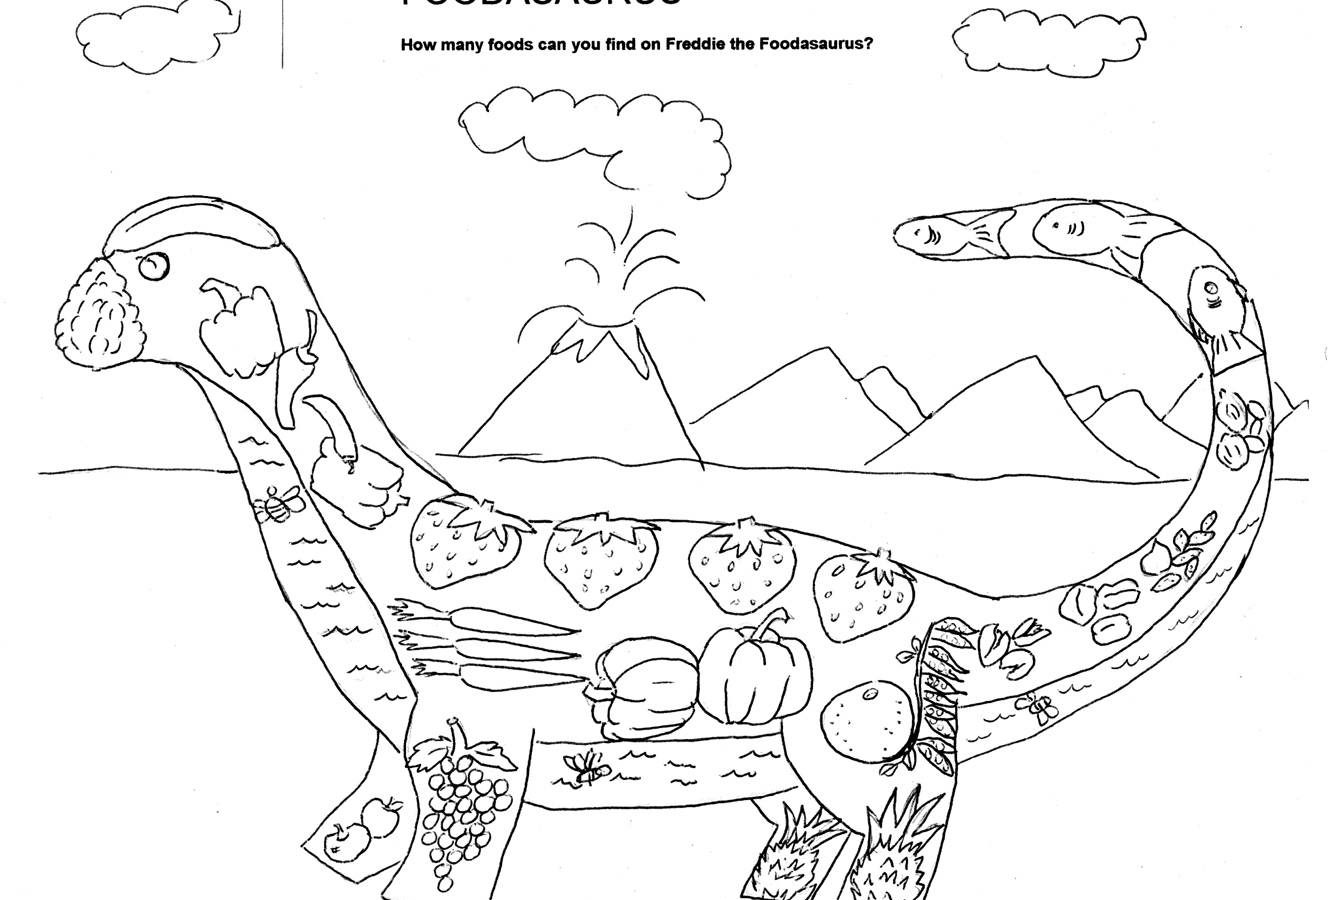 dairy farm coloring pages clip art of a coloring page of a dairy farm cow eating a pages dairy coloring farm